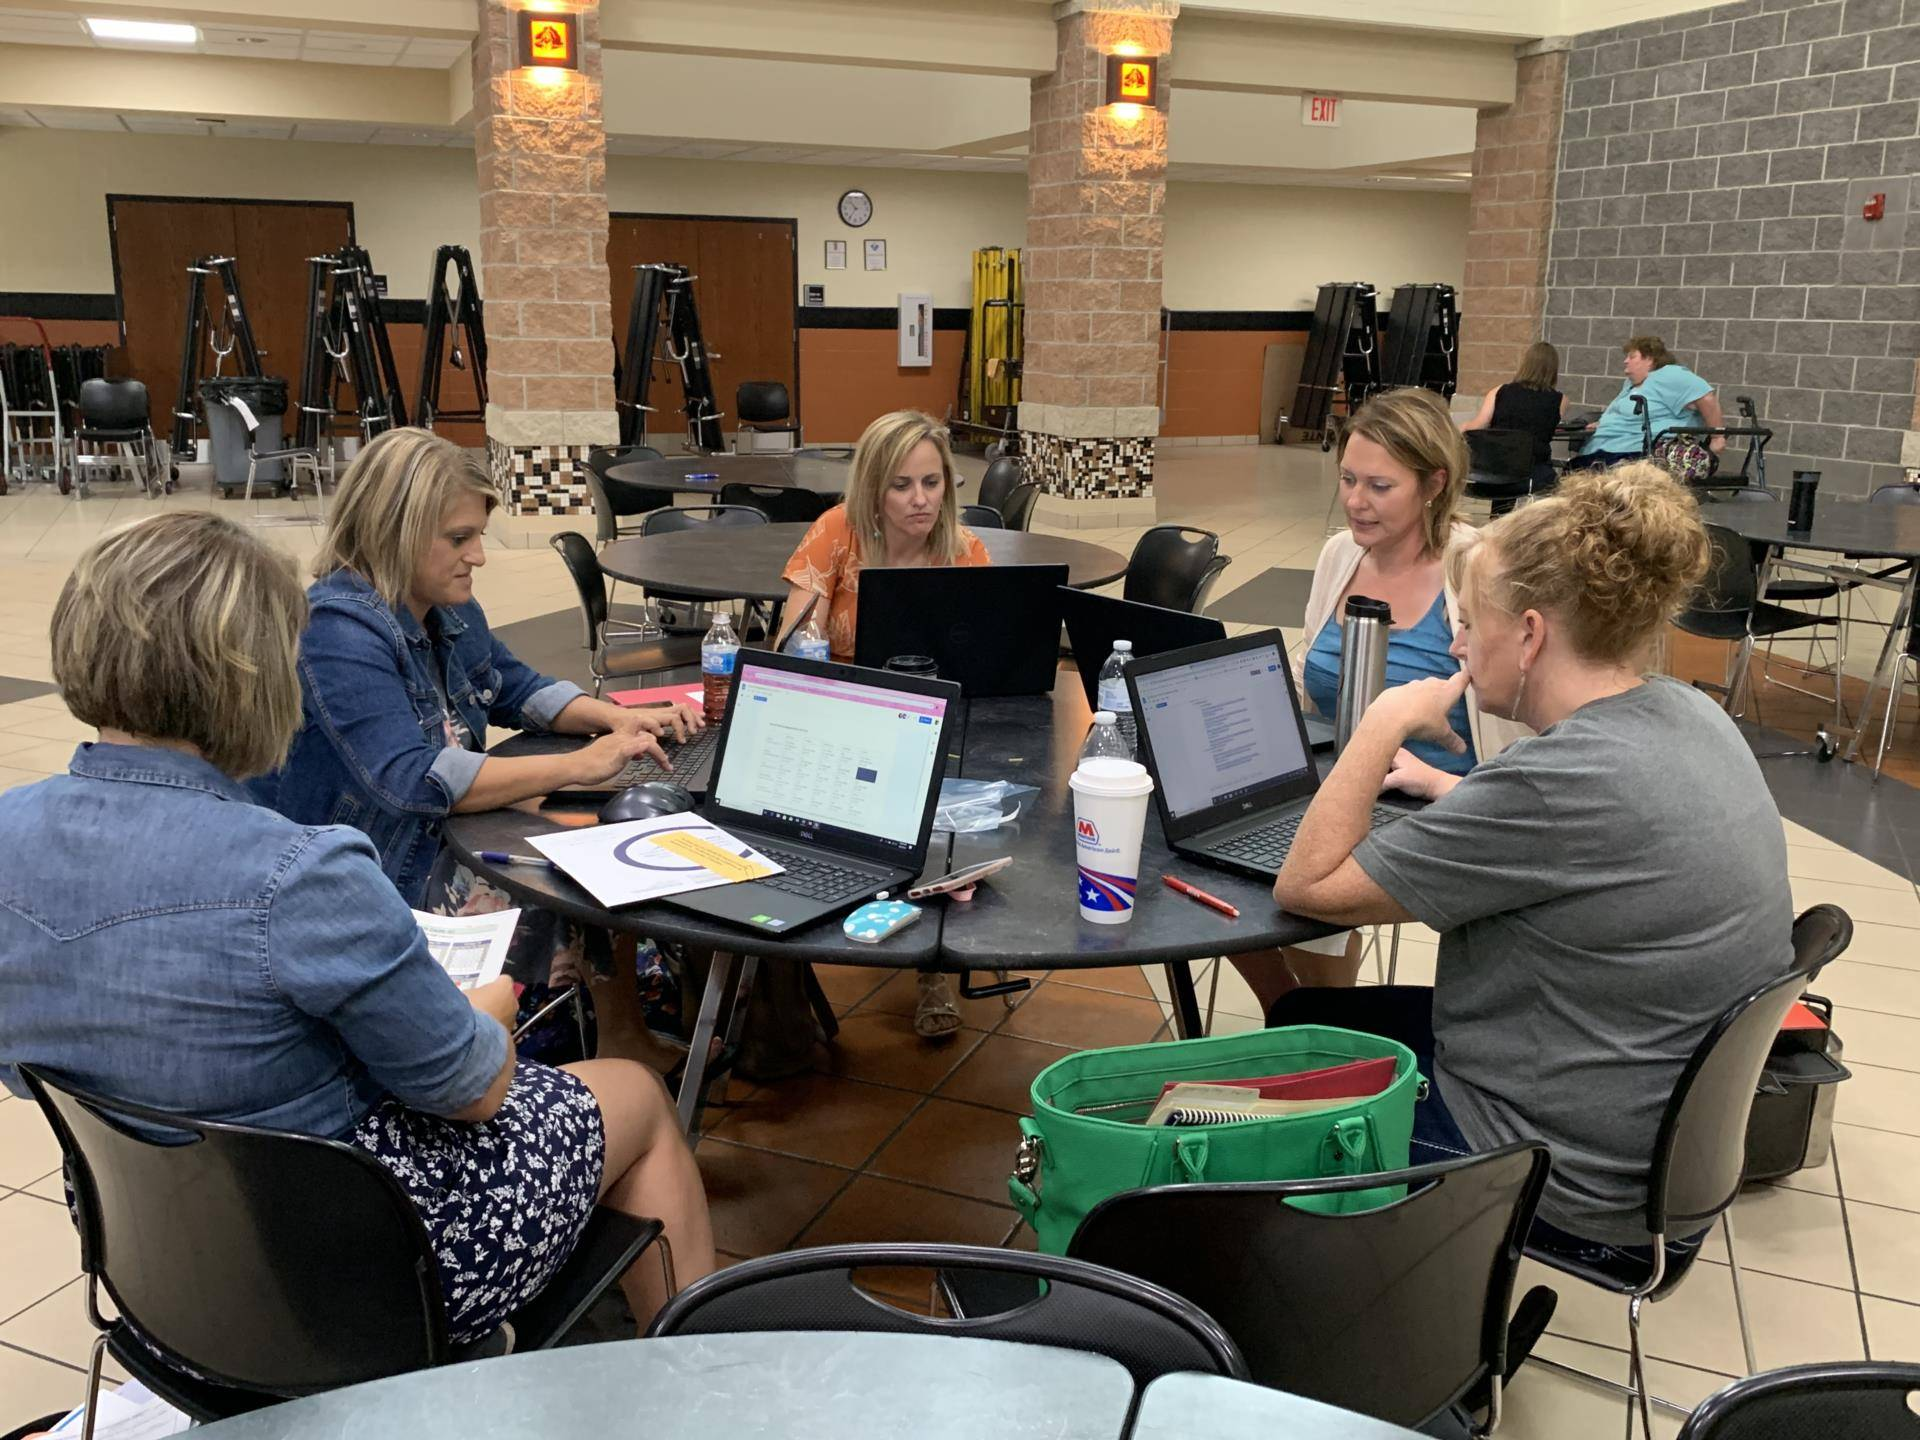 Teachers working together at a table.